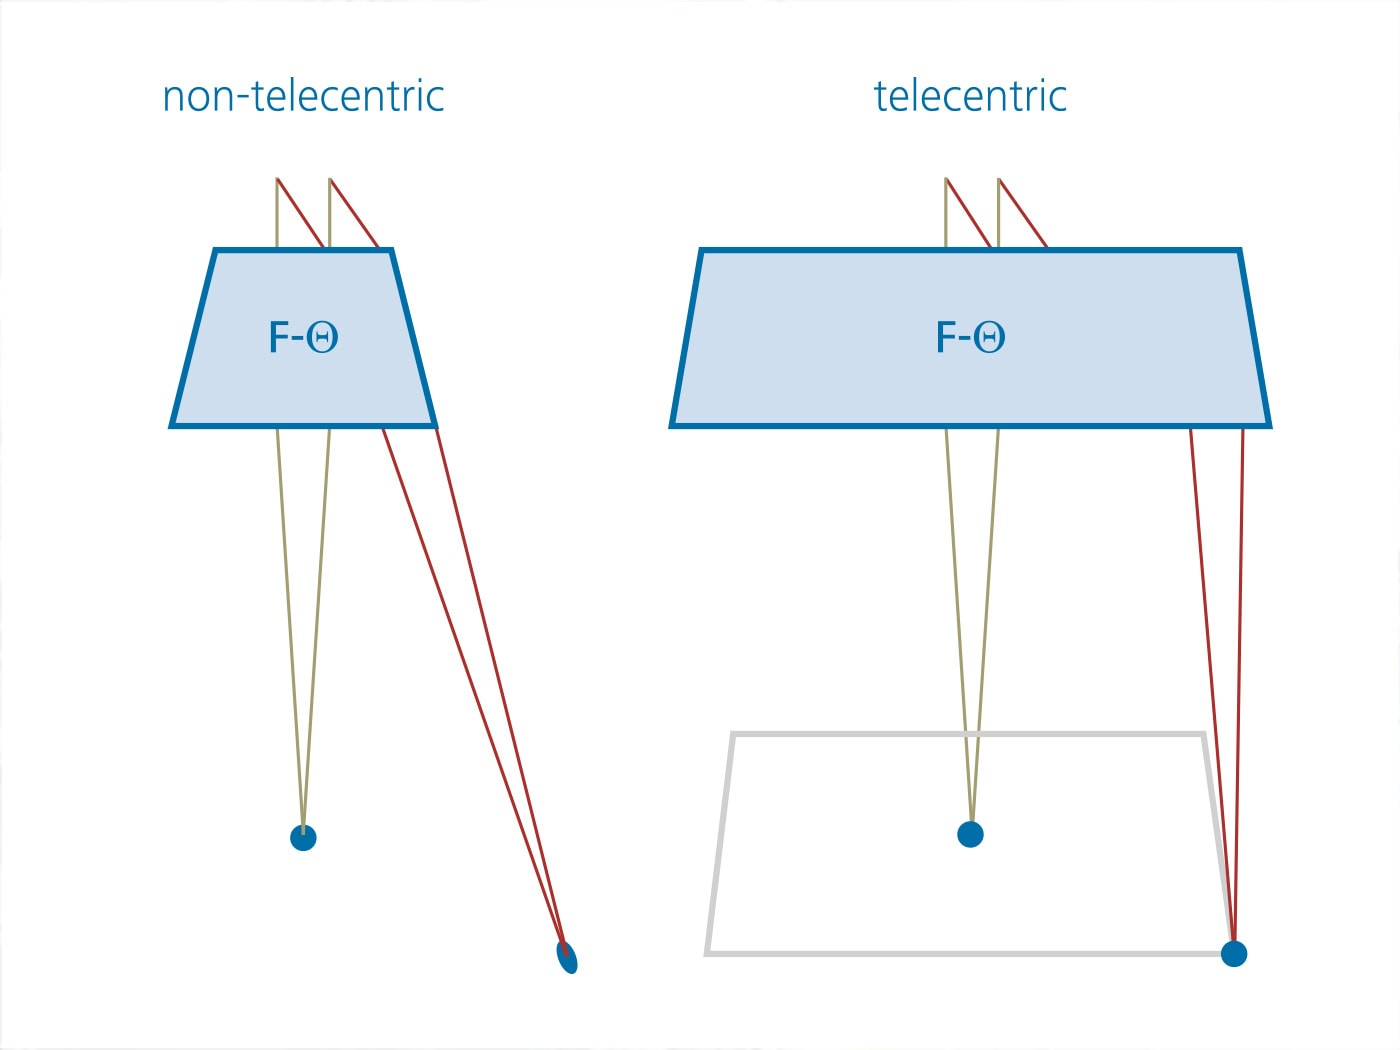 A telecentric lens shows more homogenous focus size distribution